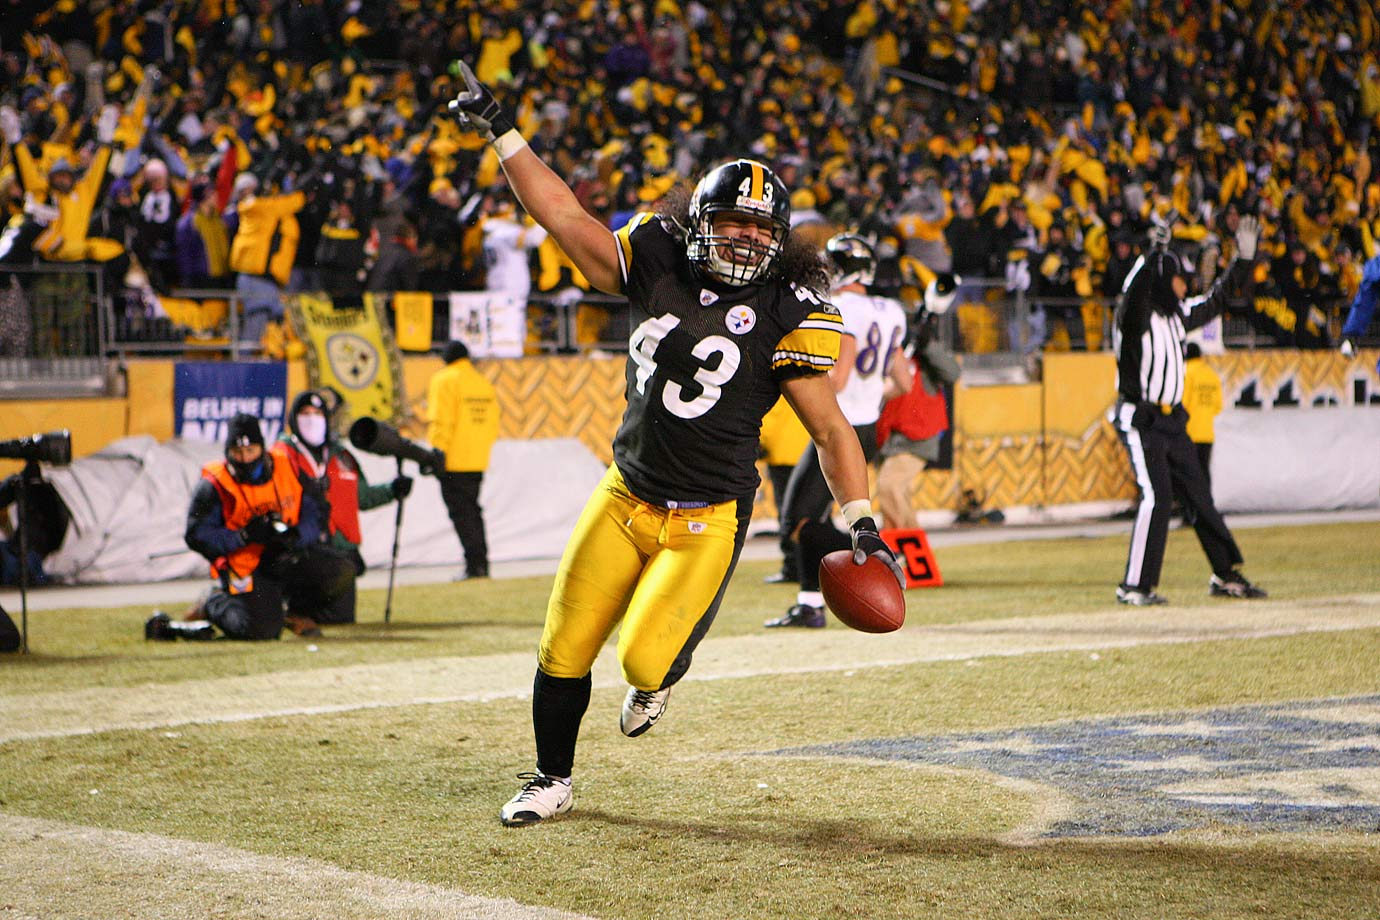 It is impossible to talk about safeties in the modern era without discussing Polamalu's impact. How many touchdowns did he save the Steelers? How many games did he alter with one timely, amazing play? Polamalu will be in the Hall, though the clock just started ticking with his retirement this off-season.​